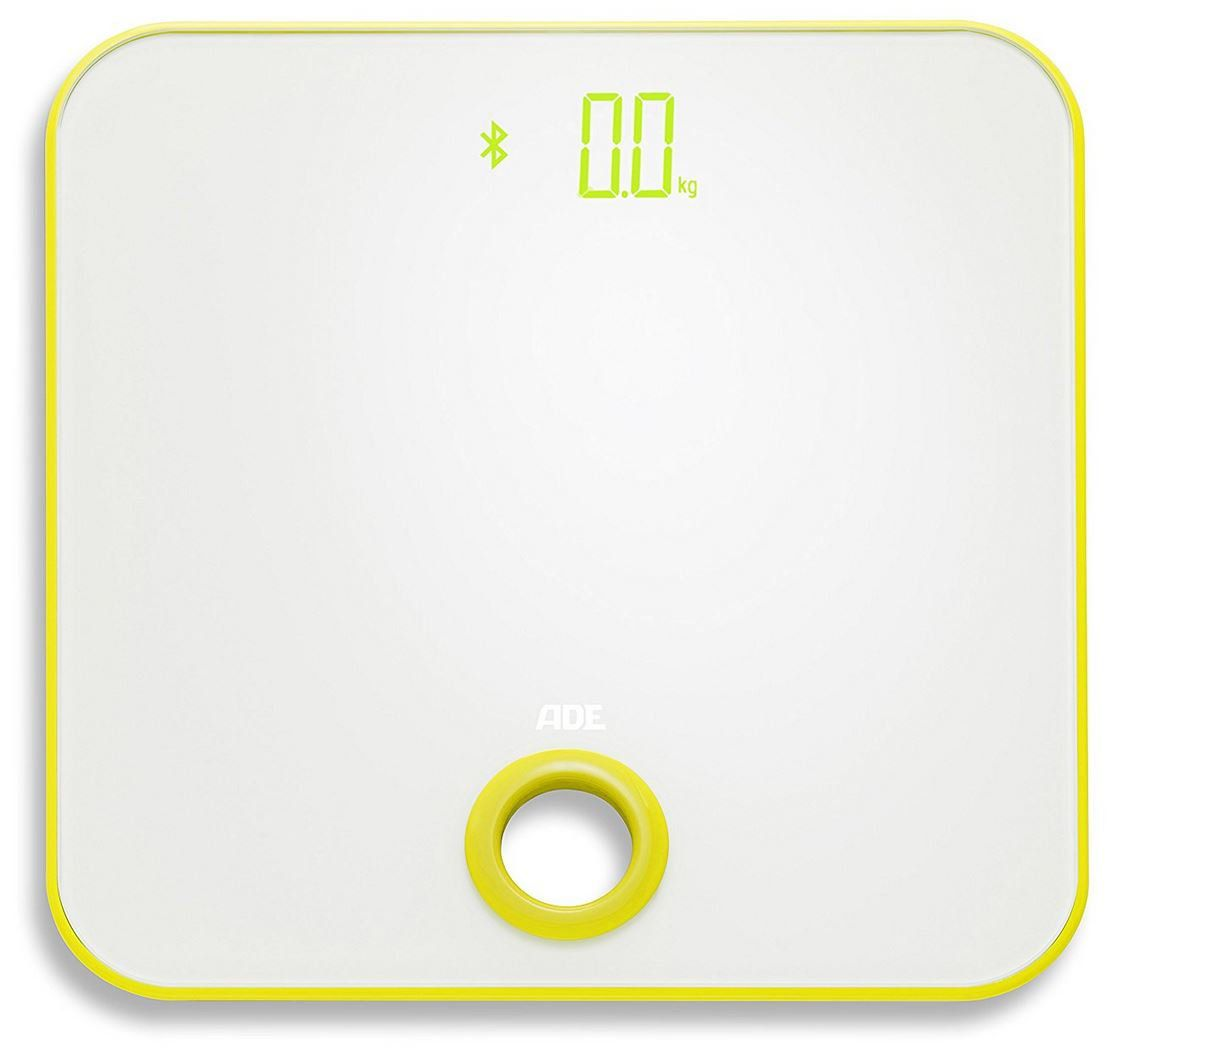 ADE BE 1614 FITvigo digitale Smart BT Personenwaage für 14,99€ (statt 54€)